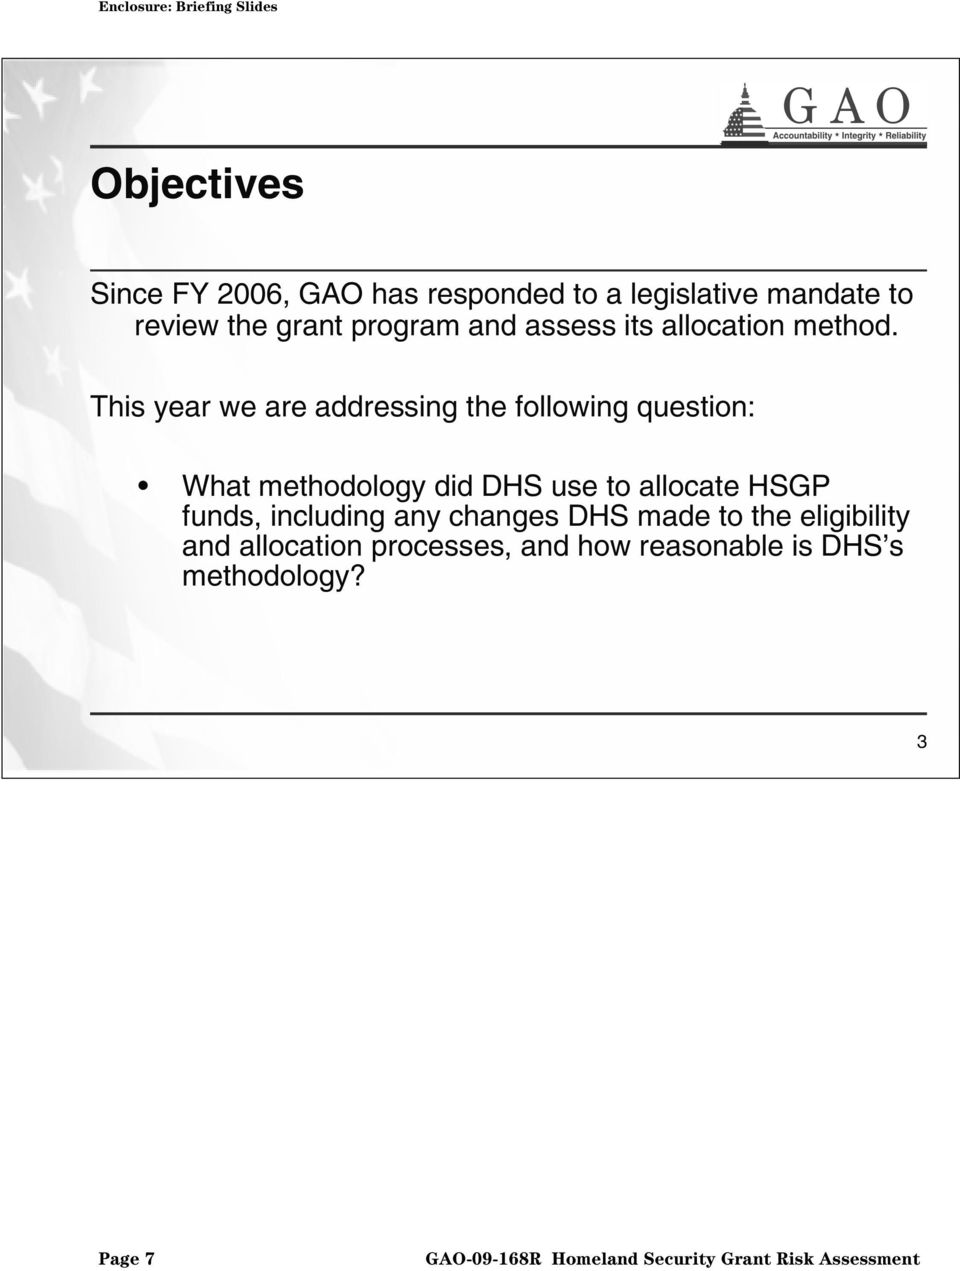 This year we are addressing the following question: What methodology did DHS use to